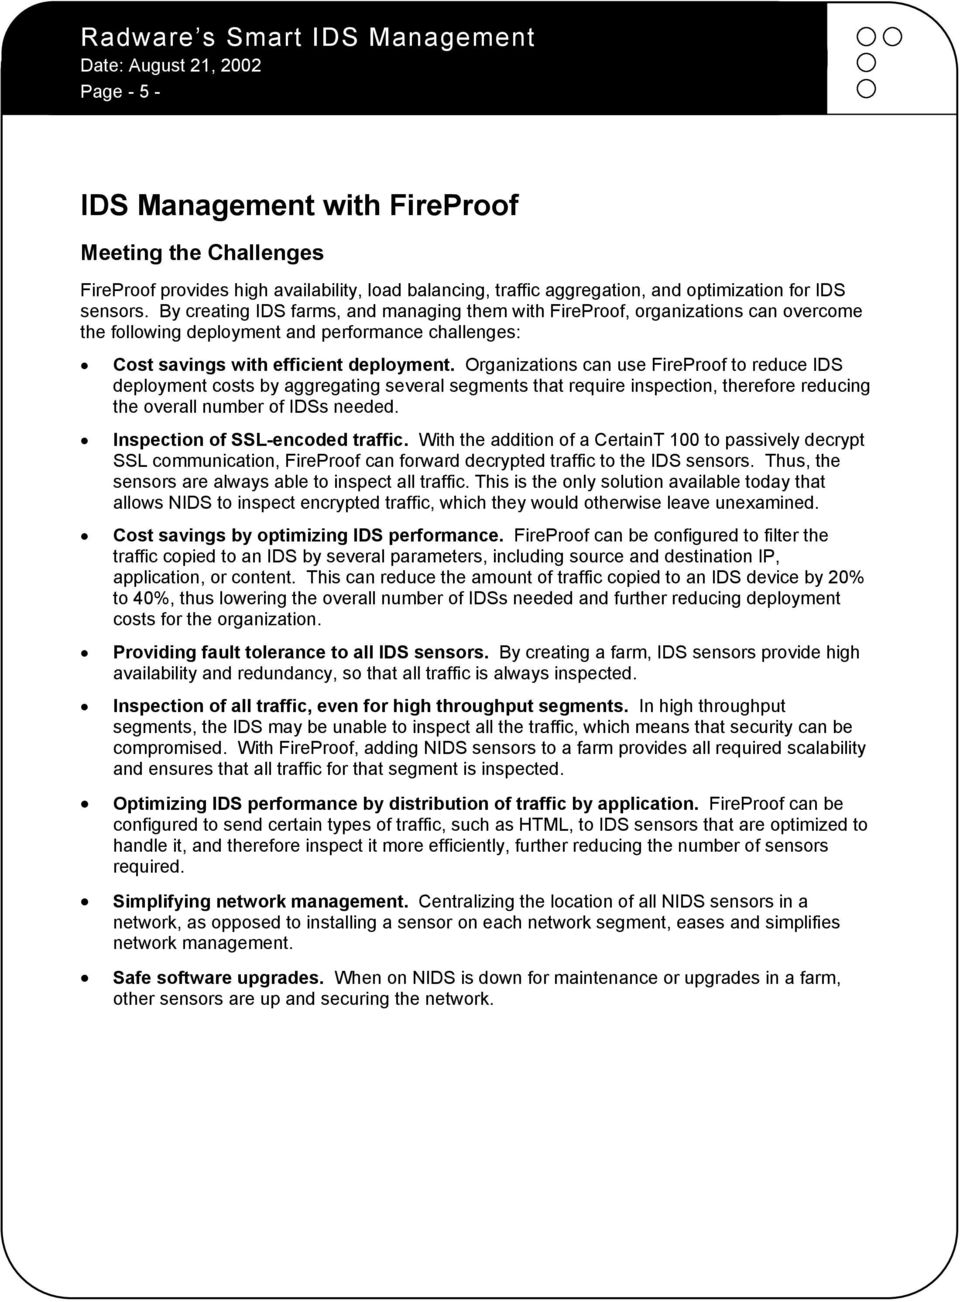 Organizations can use FireProof to reduce IDS deployment costs by aggregating several segments that require inspection, therefore reducing the overall number of IDSs needed.